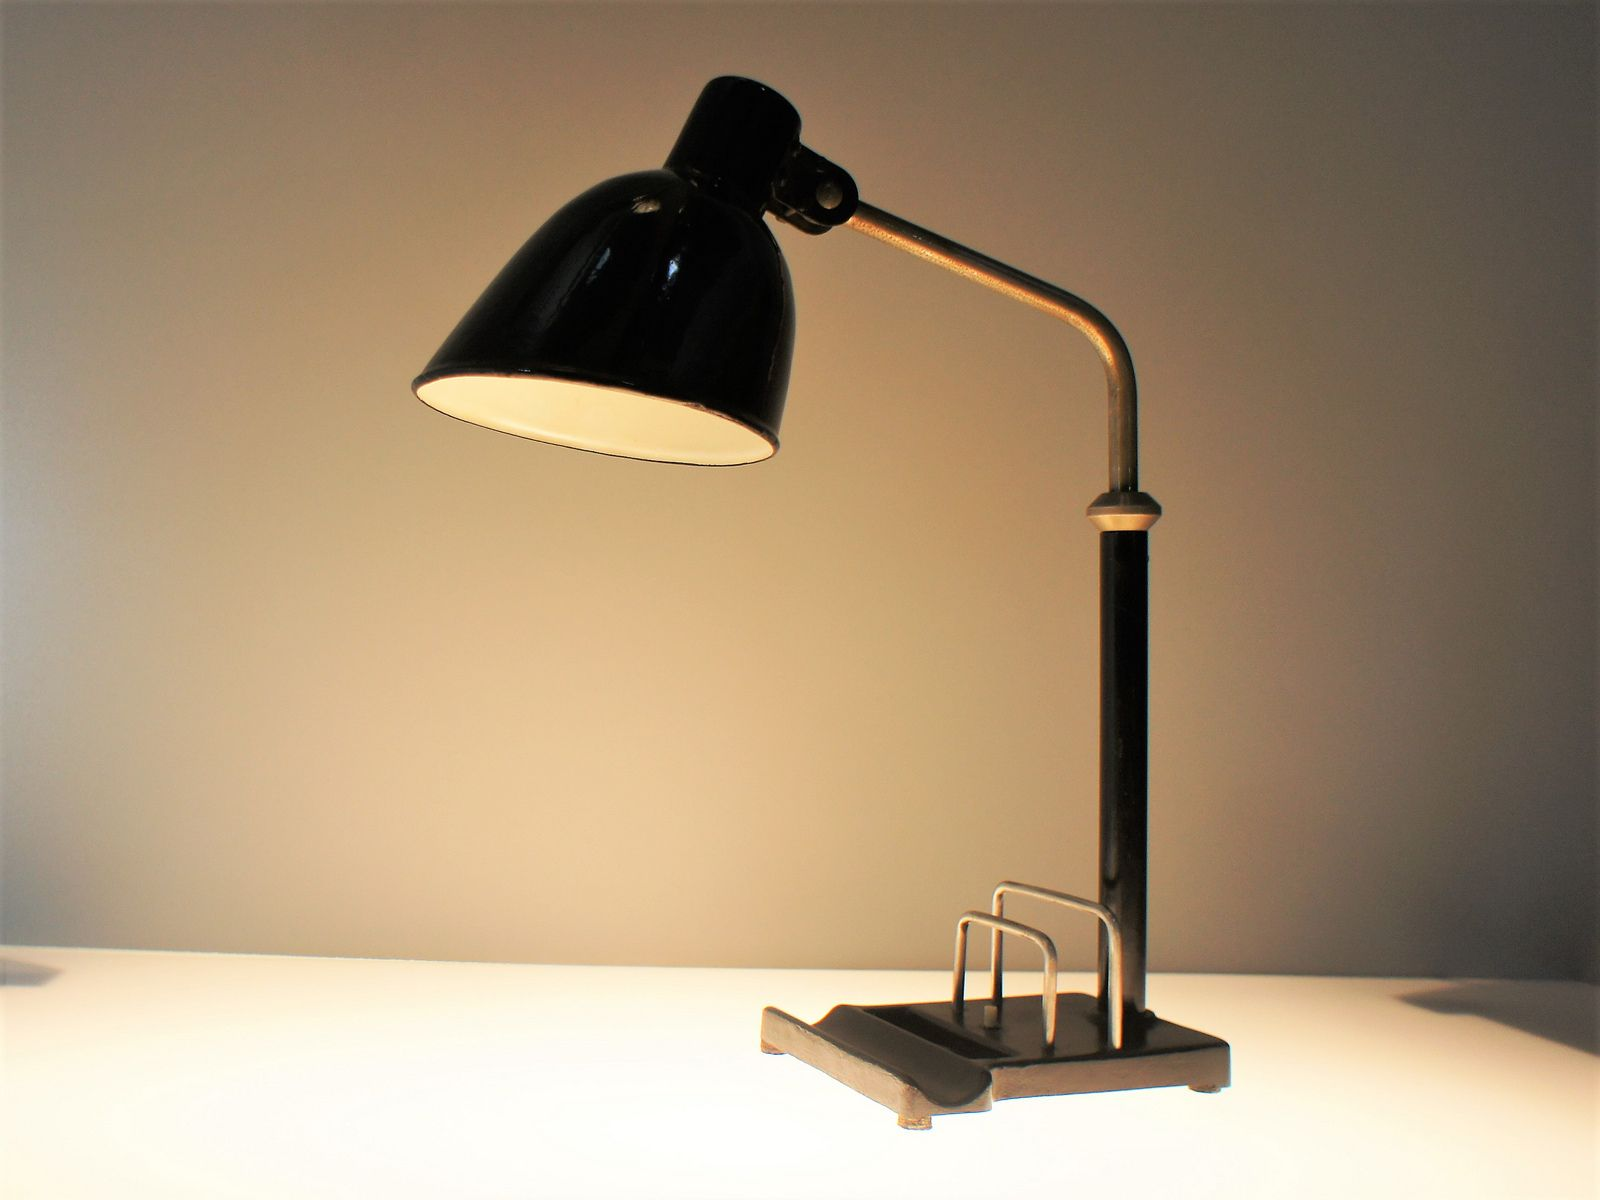 Christian Dell Bauhaus Light Table Table Lamp Table